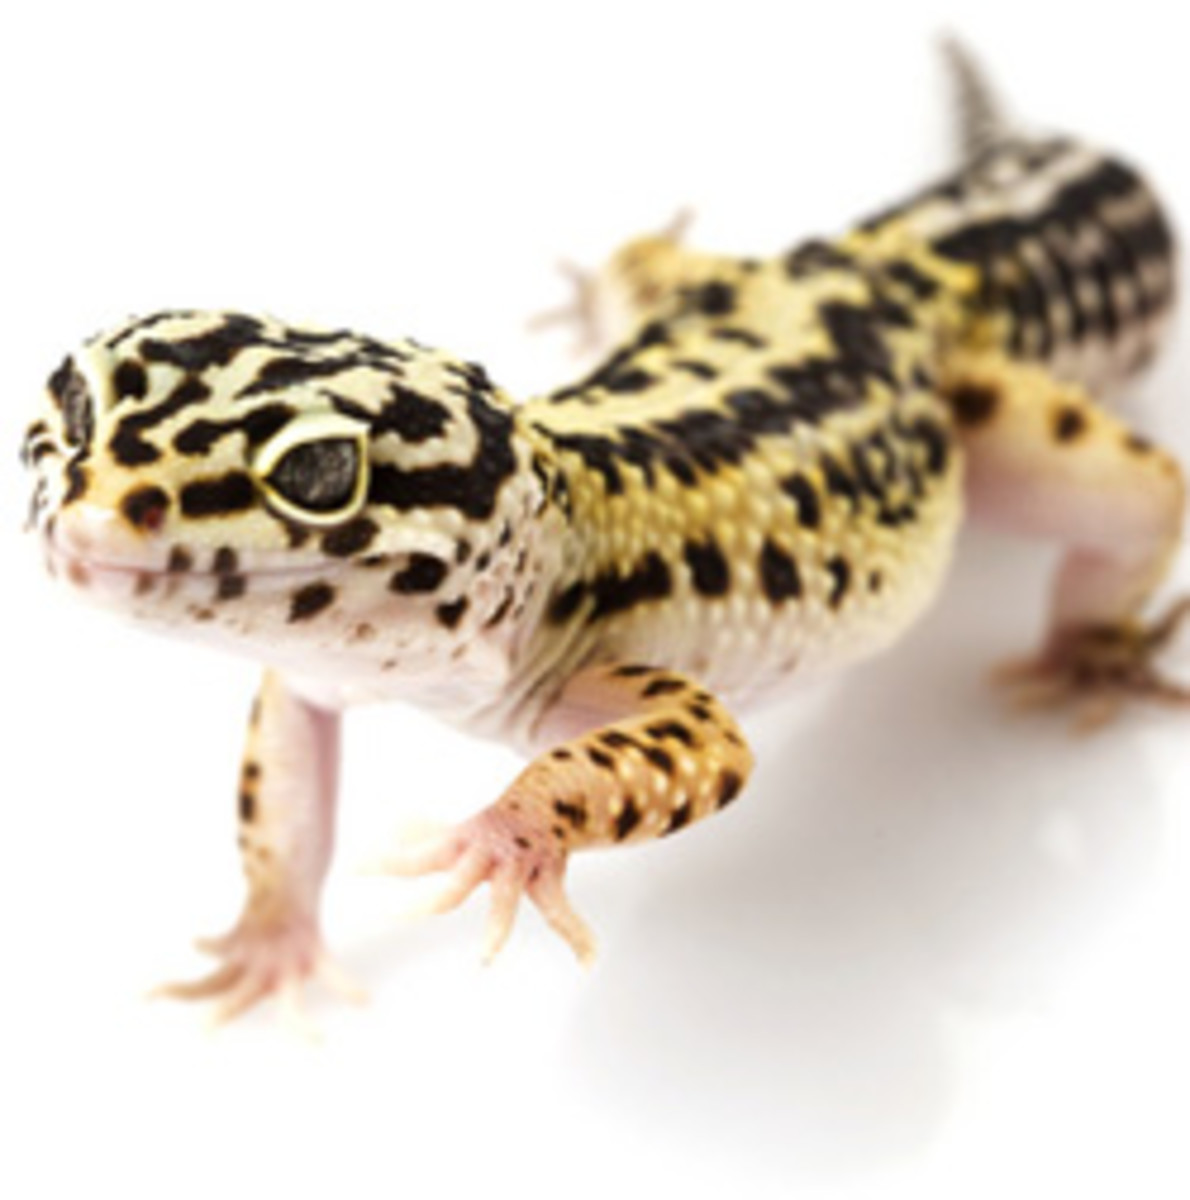 leopard-gecko-care-sheet-helpful-information